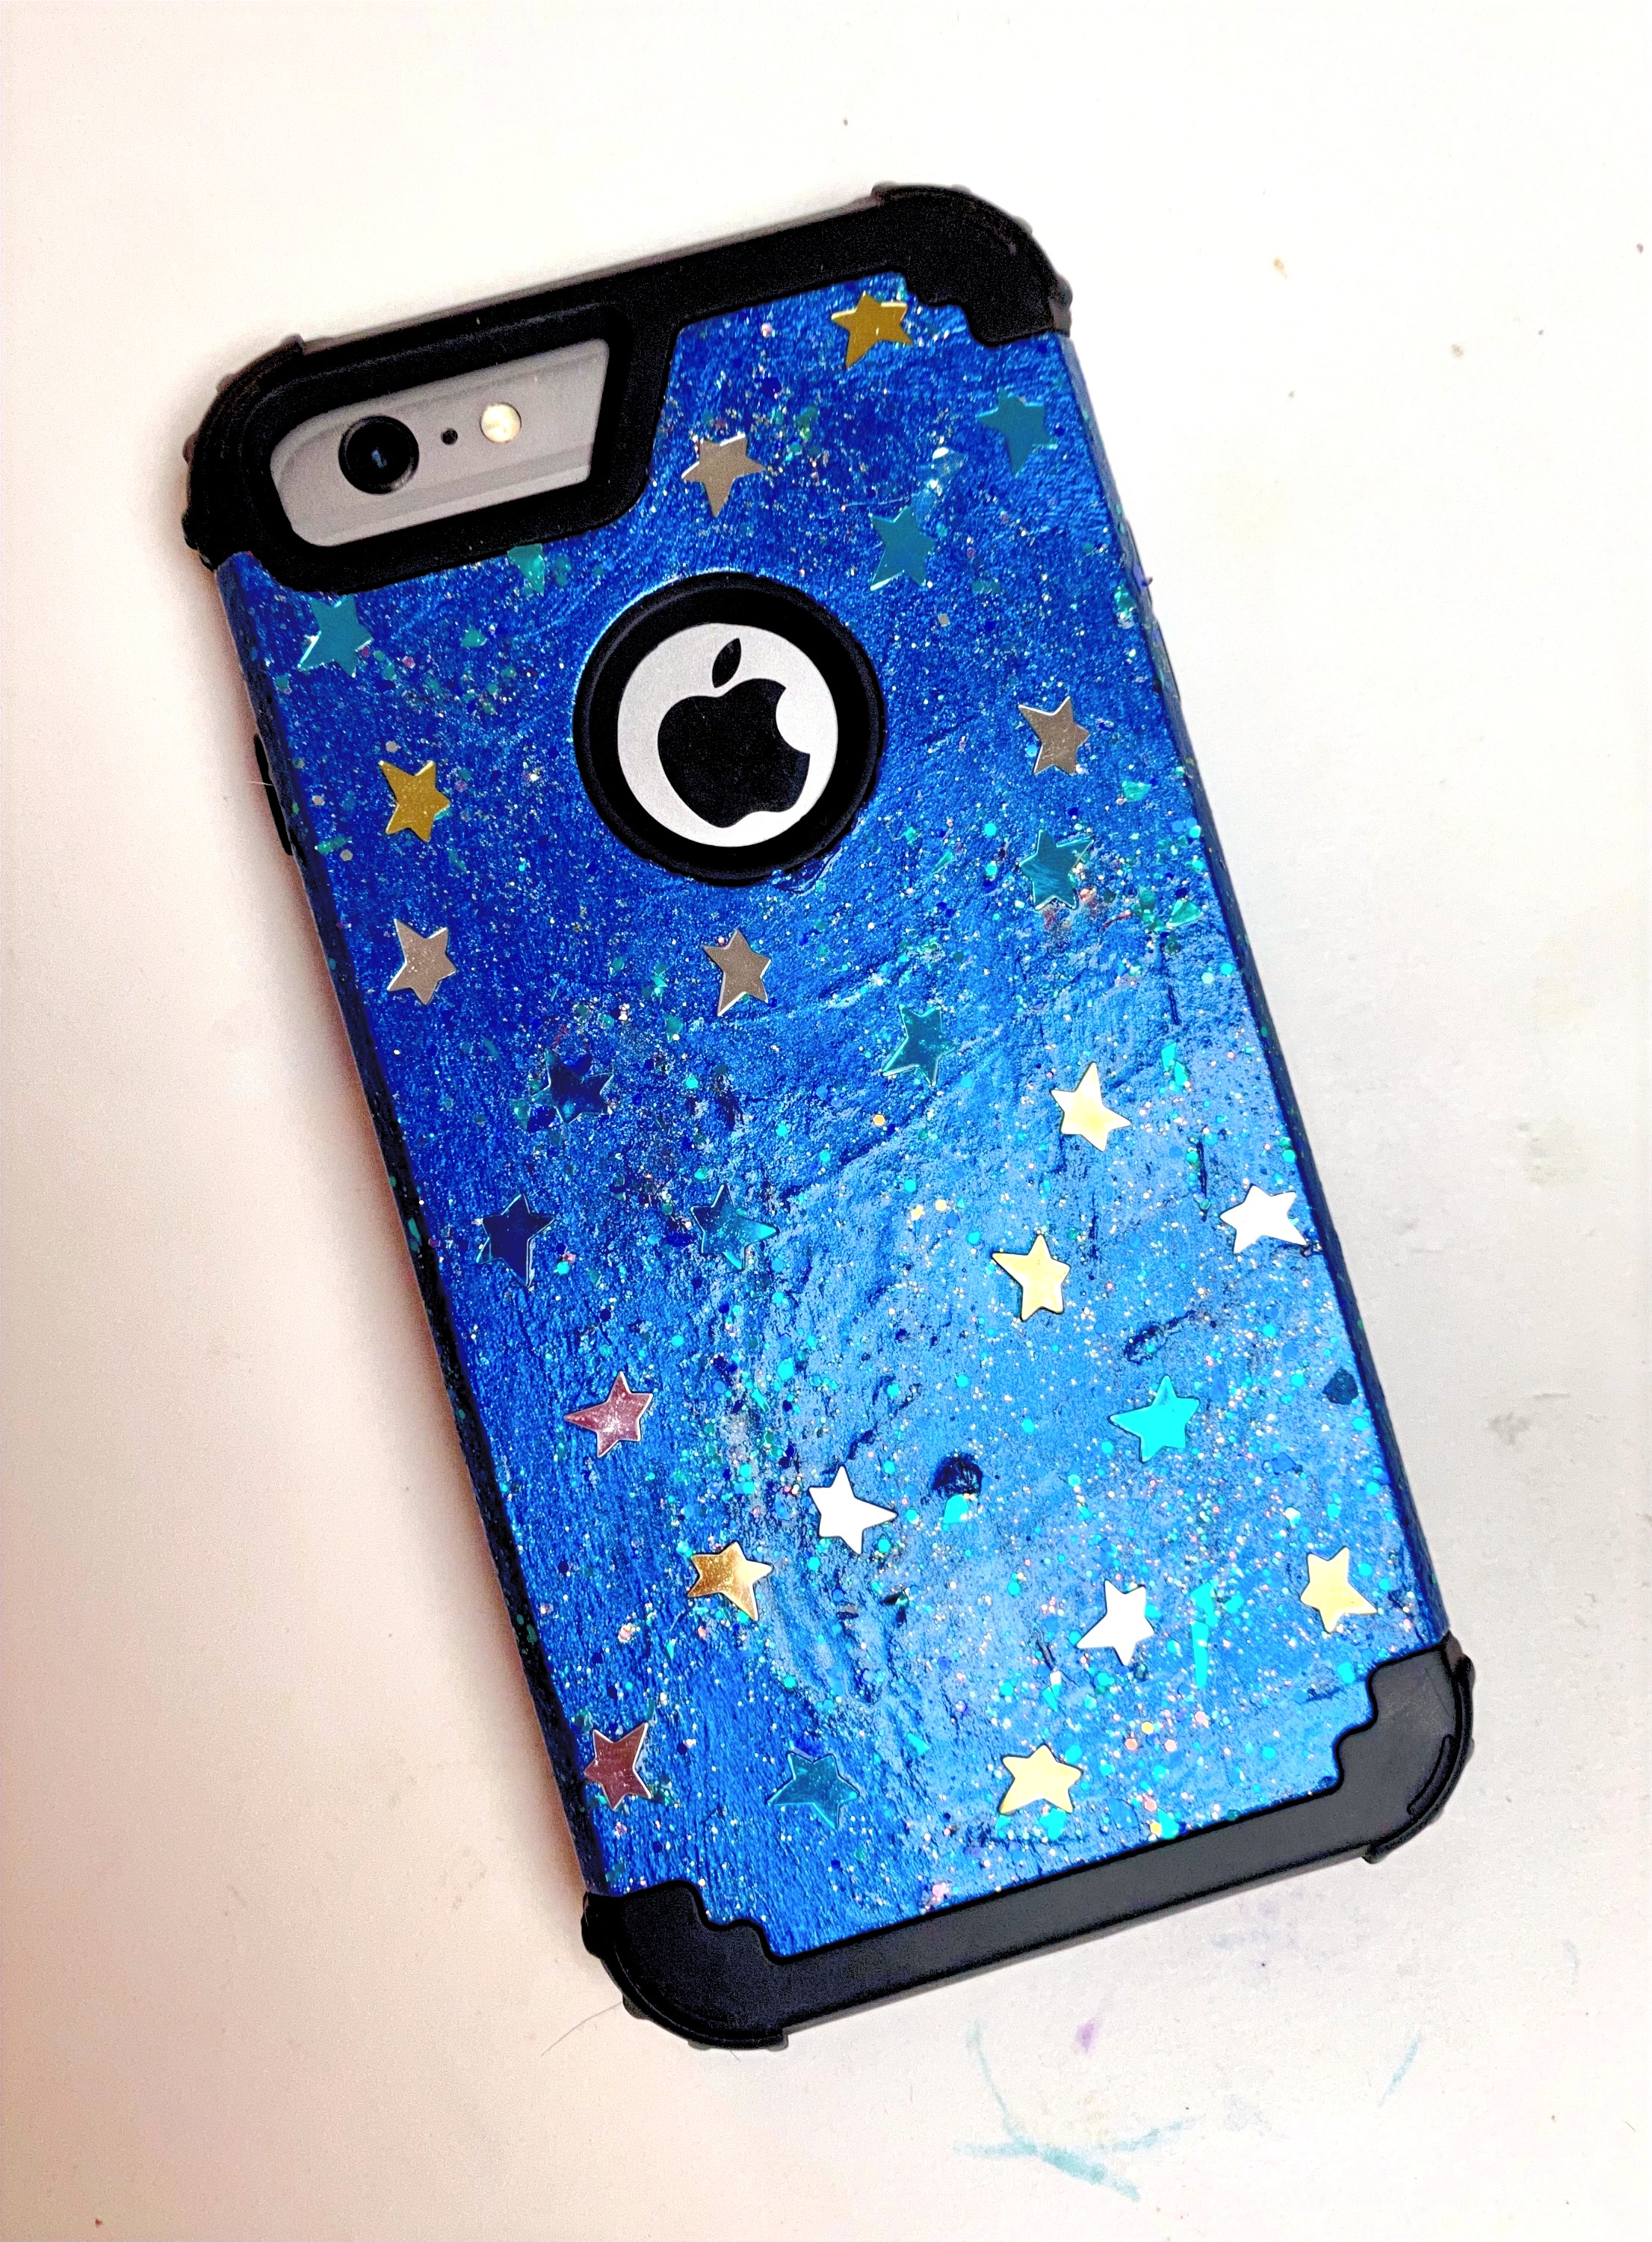 Mixed media cell phone case